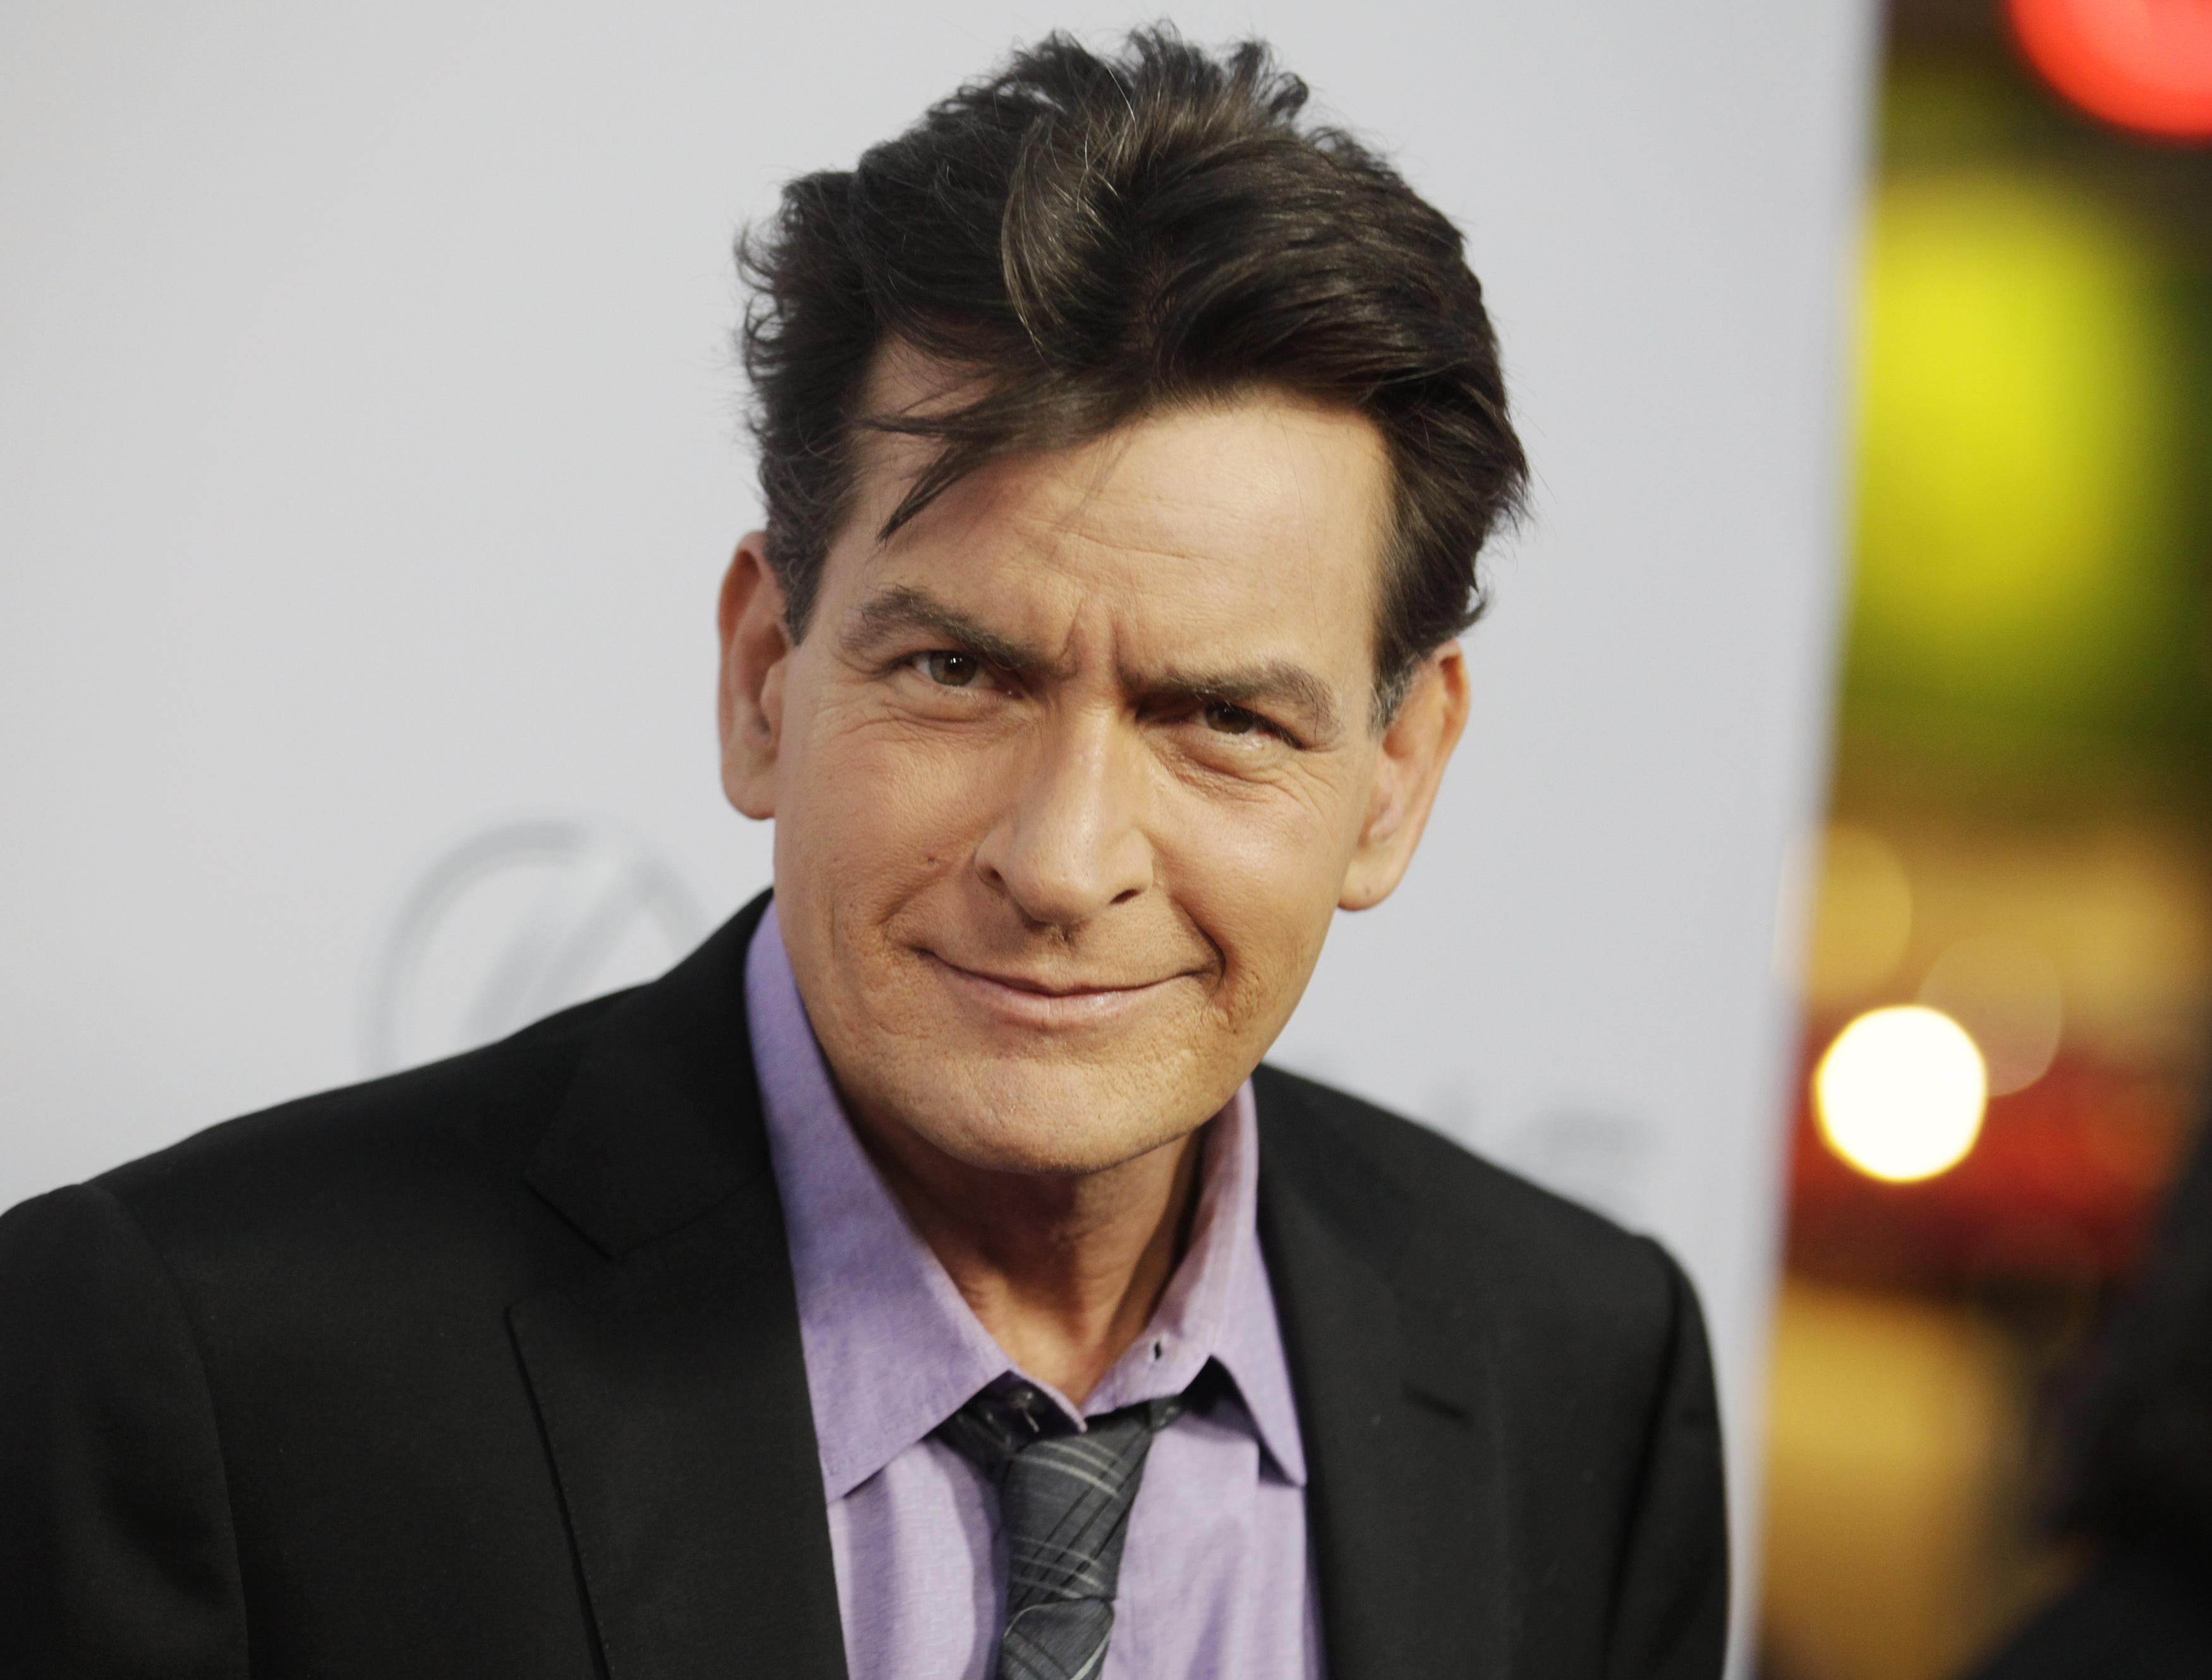 charlie sheen fiancee overdose